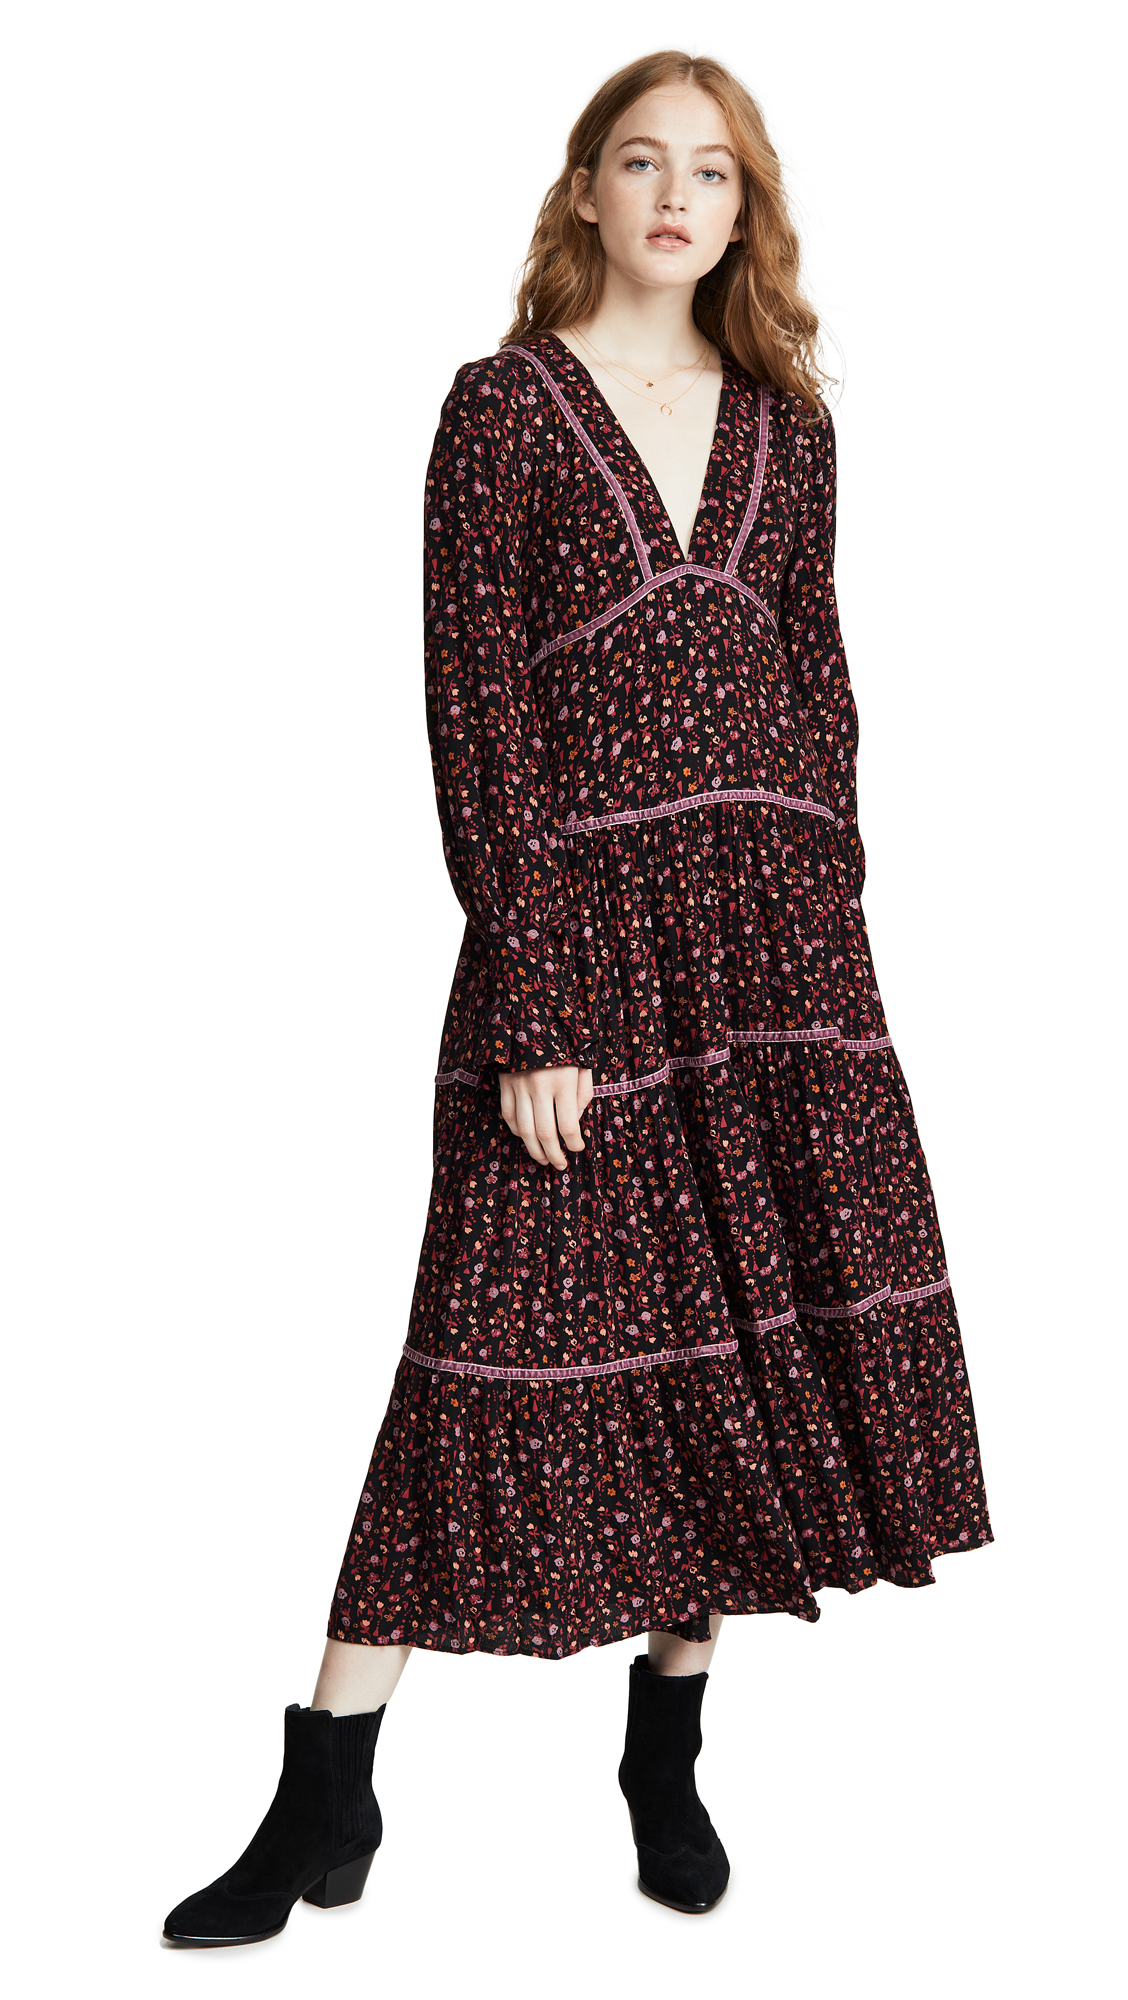 Photo of Free People Take A Little Time Midi Dress - shop Free People Clothing, Dresses online